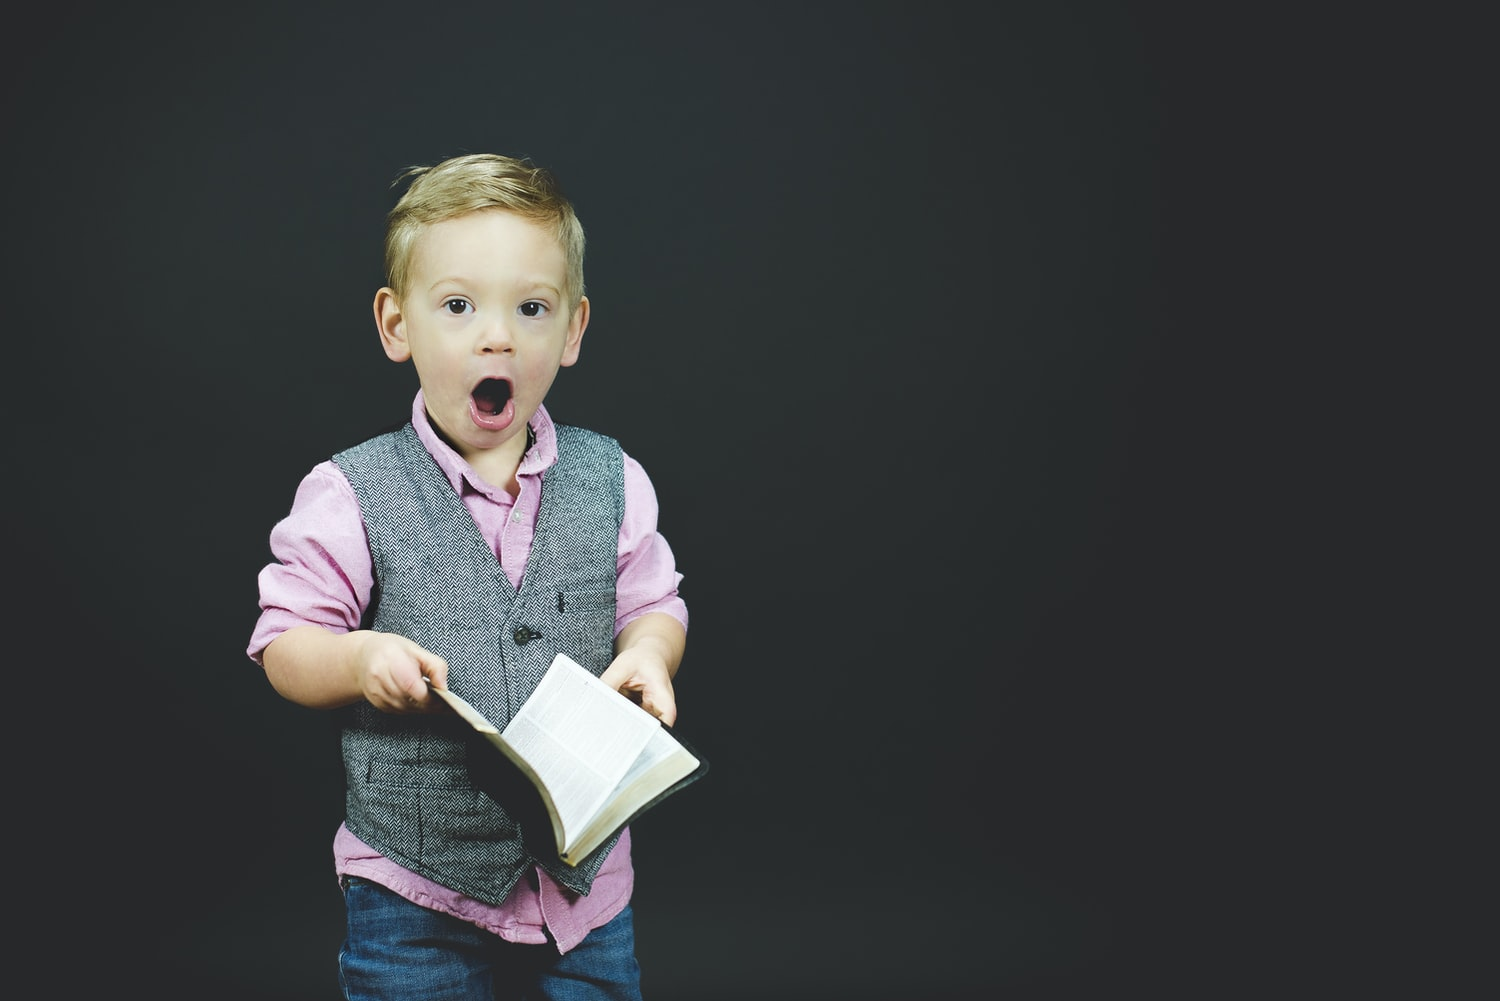 little boy holding a book looking amused